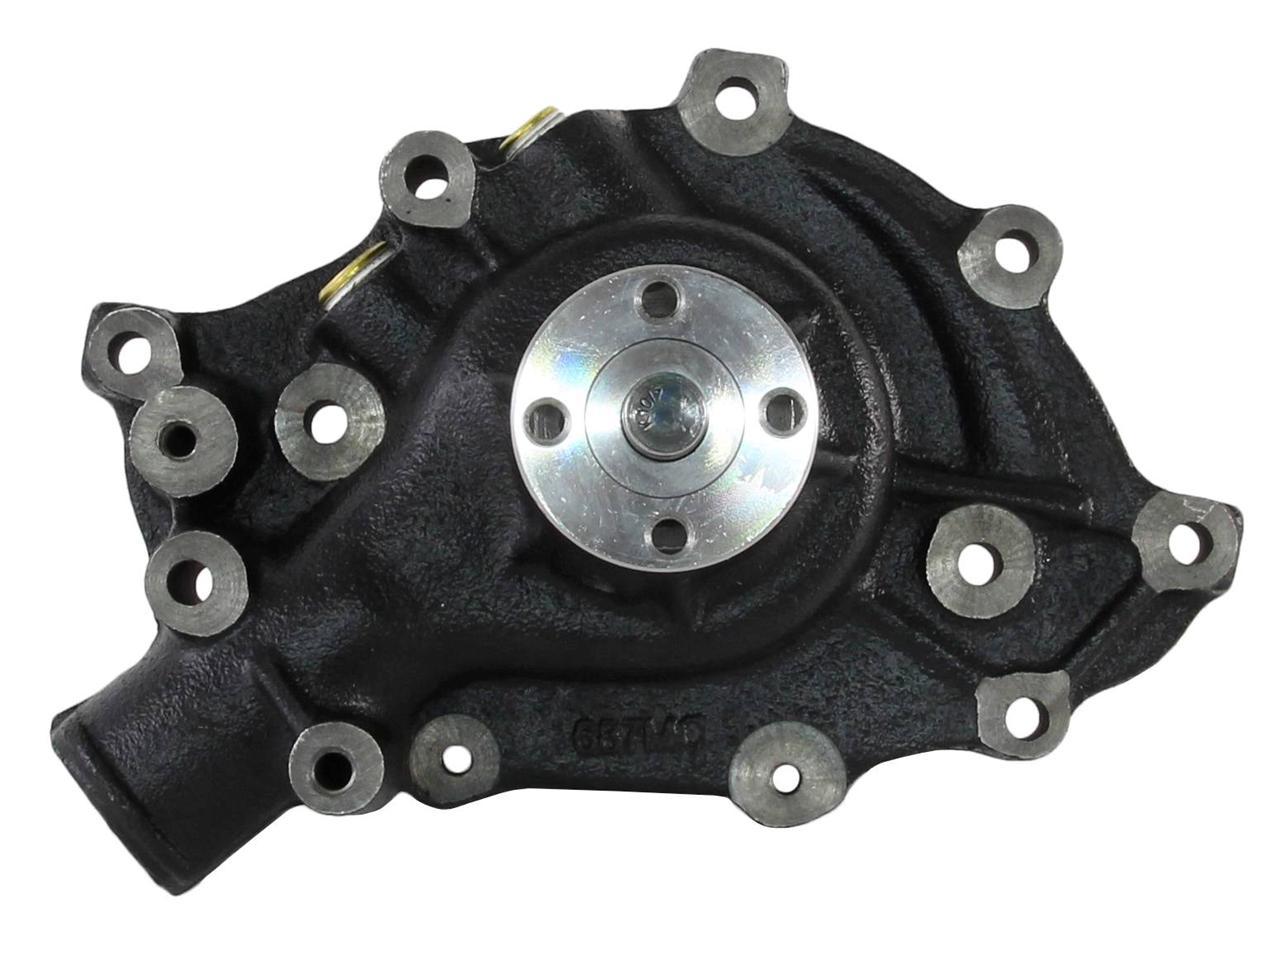 NEW WATER PUMP GM MARINE SMALL BLOCK 4.3L 5.0L 5.7L 18-3583-18-3506 18-3599